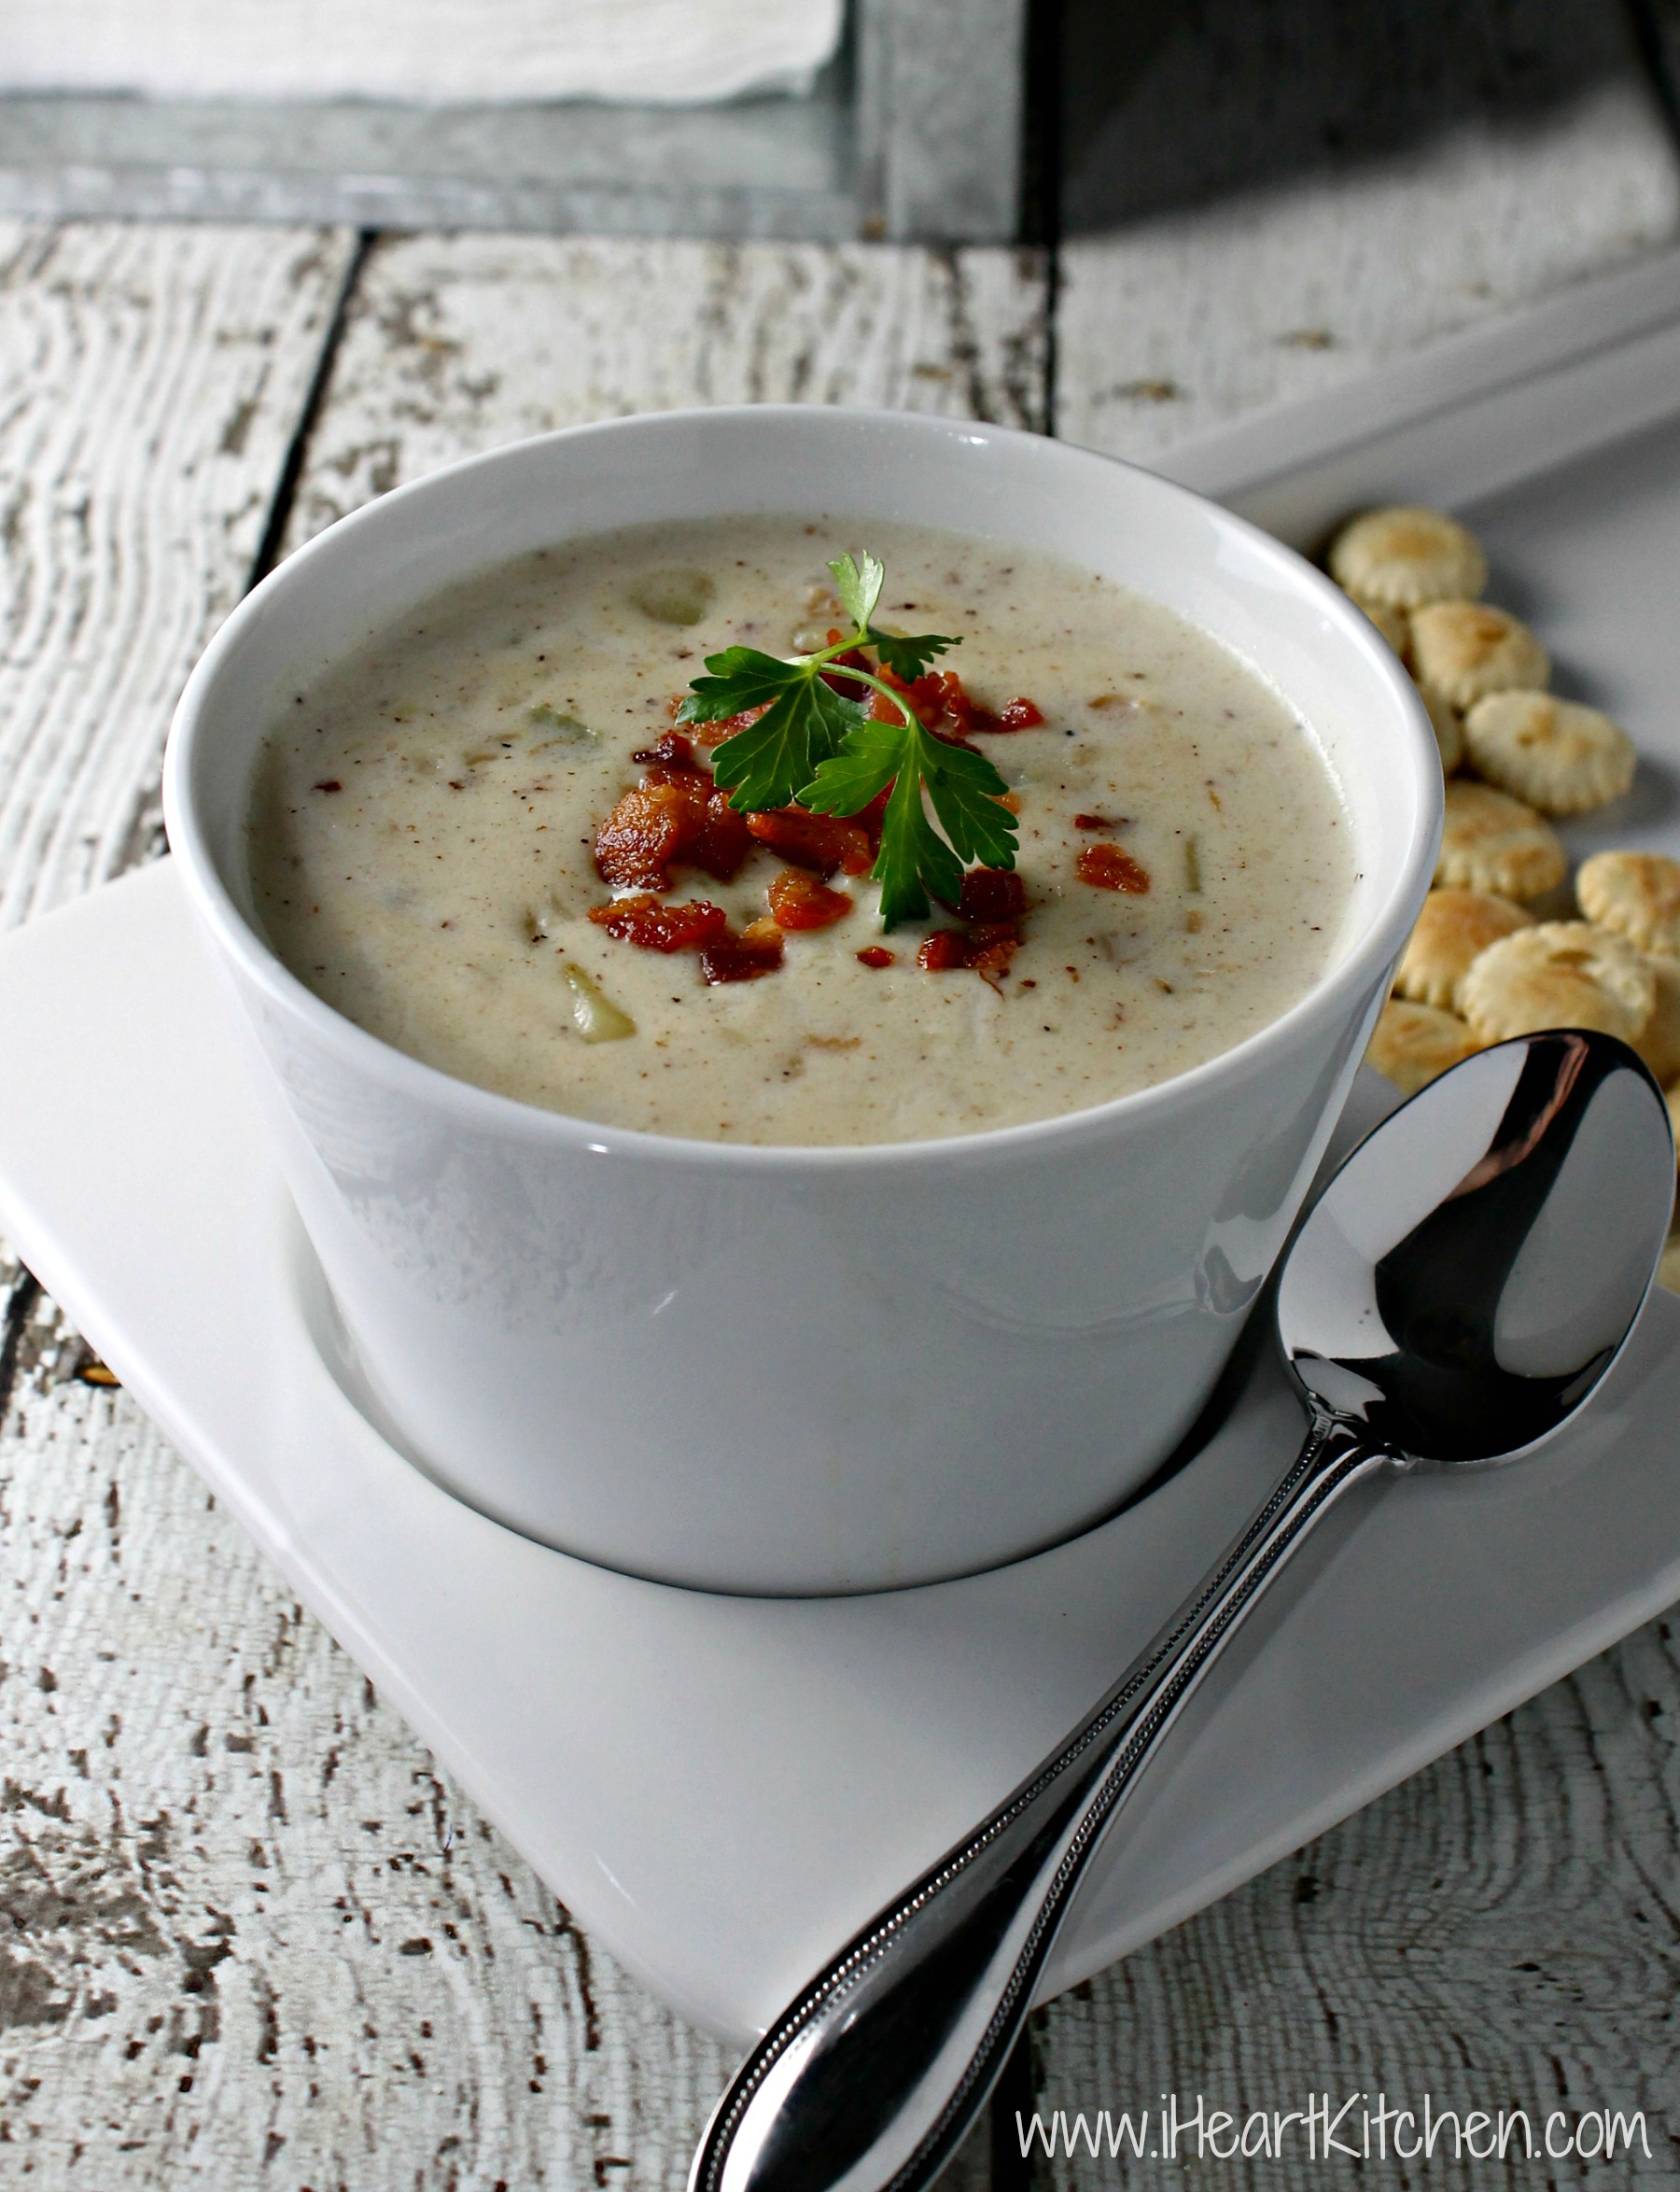 Easy Clam Chowder - I Heart Kitchen